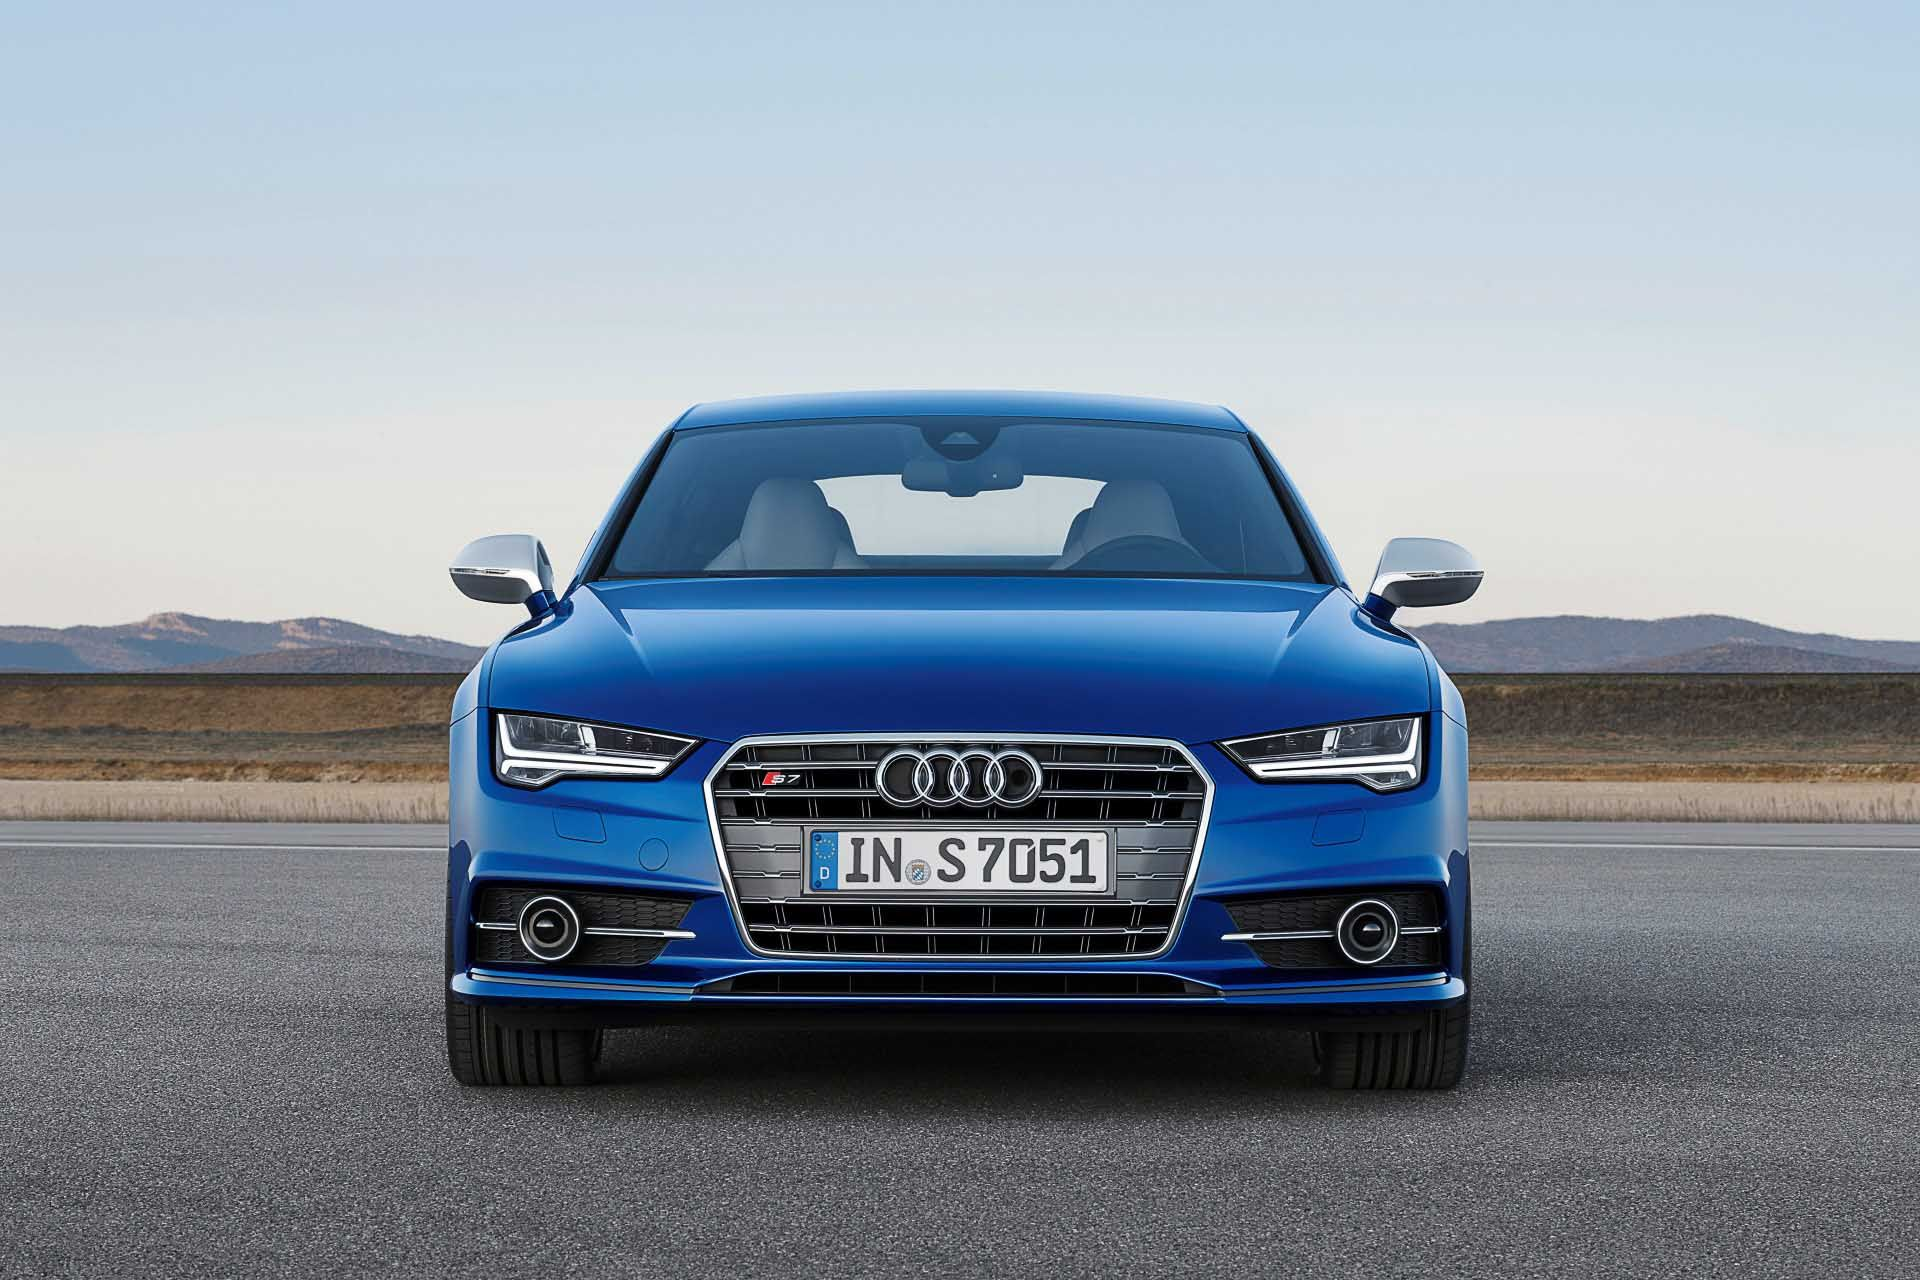 10 Audi S7 Sportback Front View Wallpapers